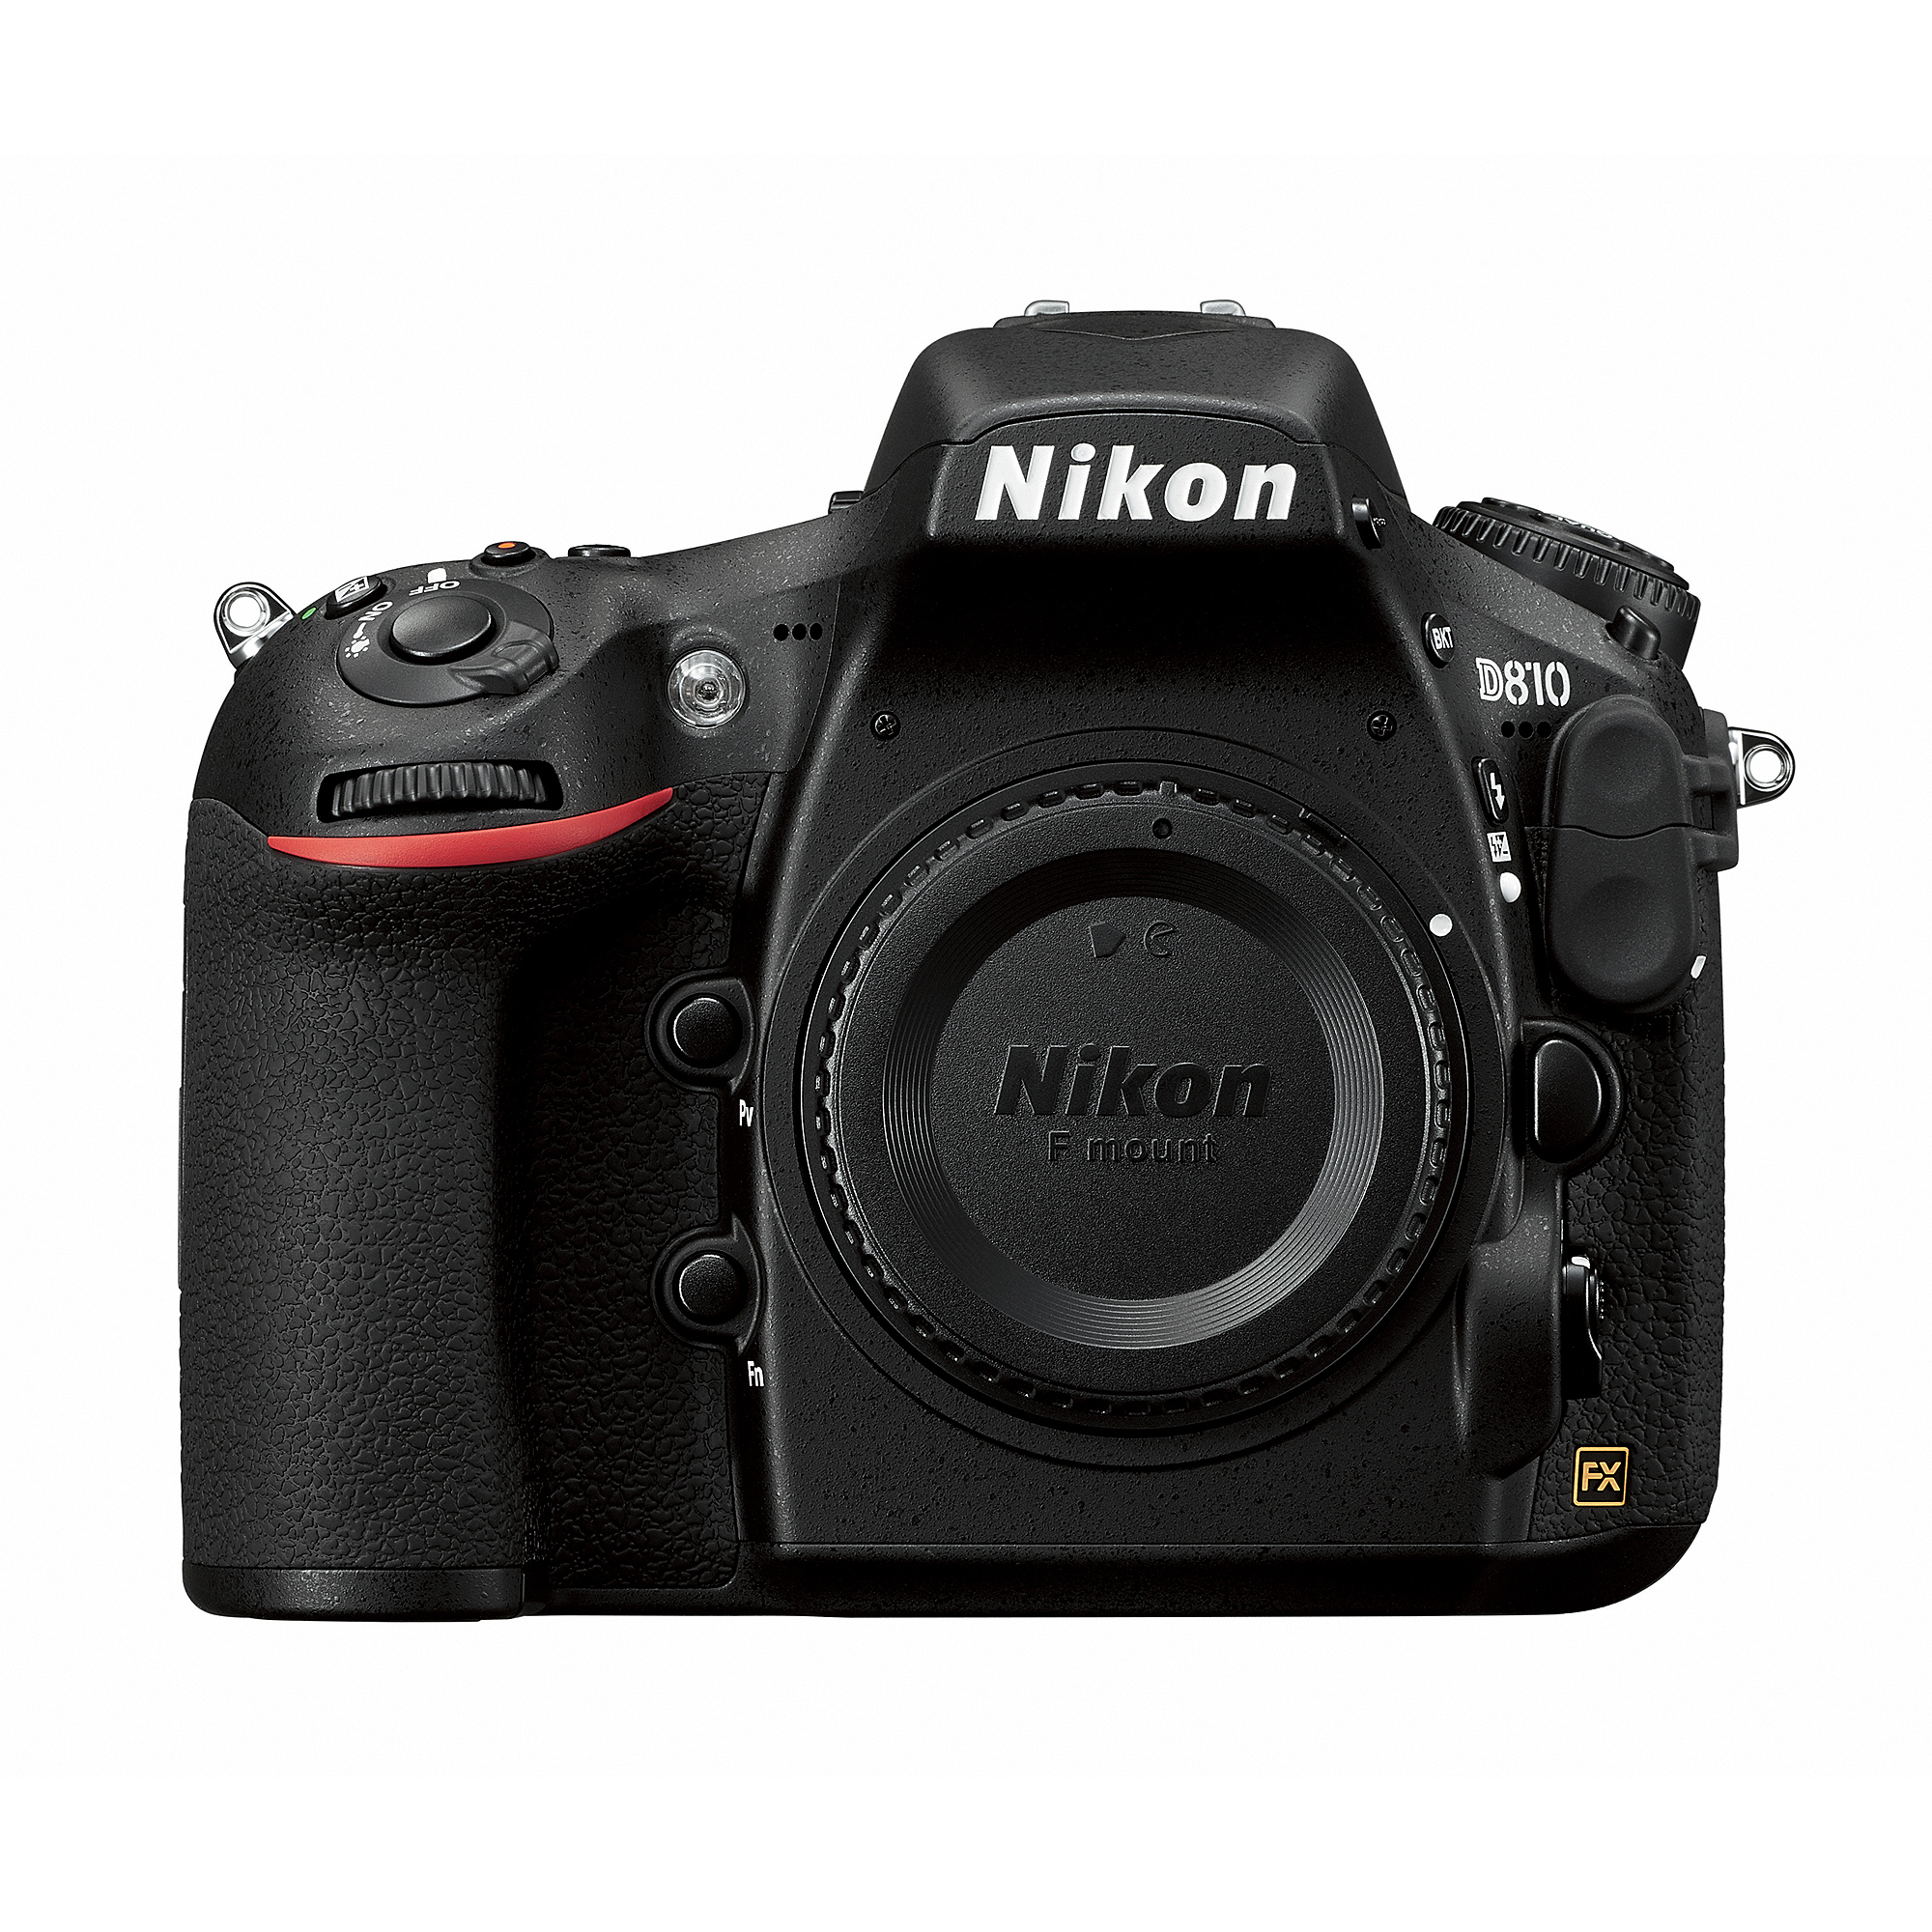 Nikon Black D810 FX-format Digital DSLR Camera with 36.3 Megapixels (Body Only)